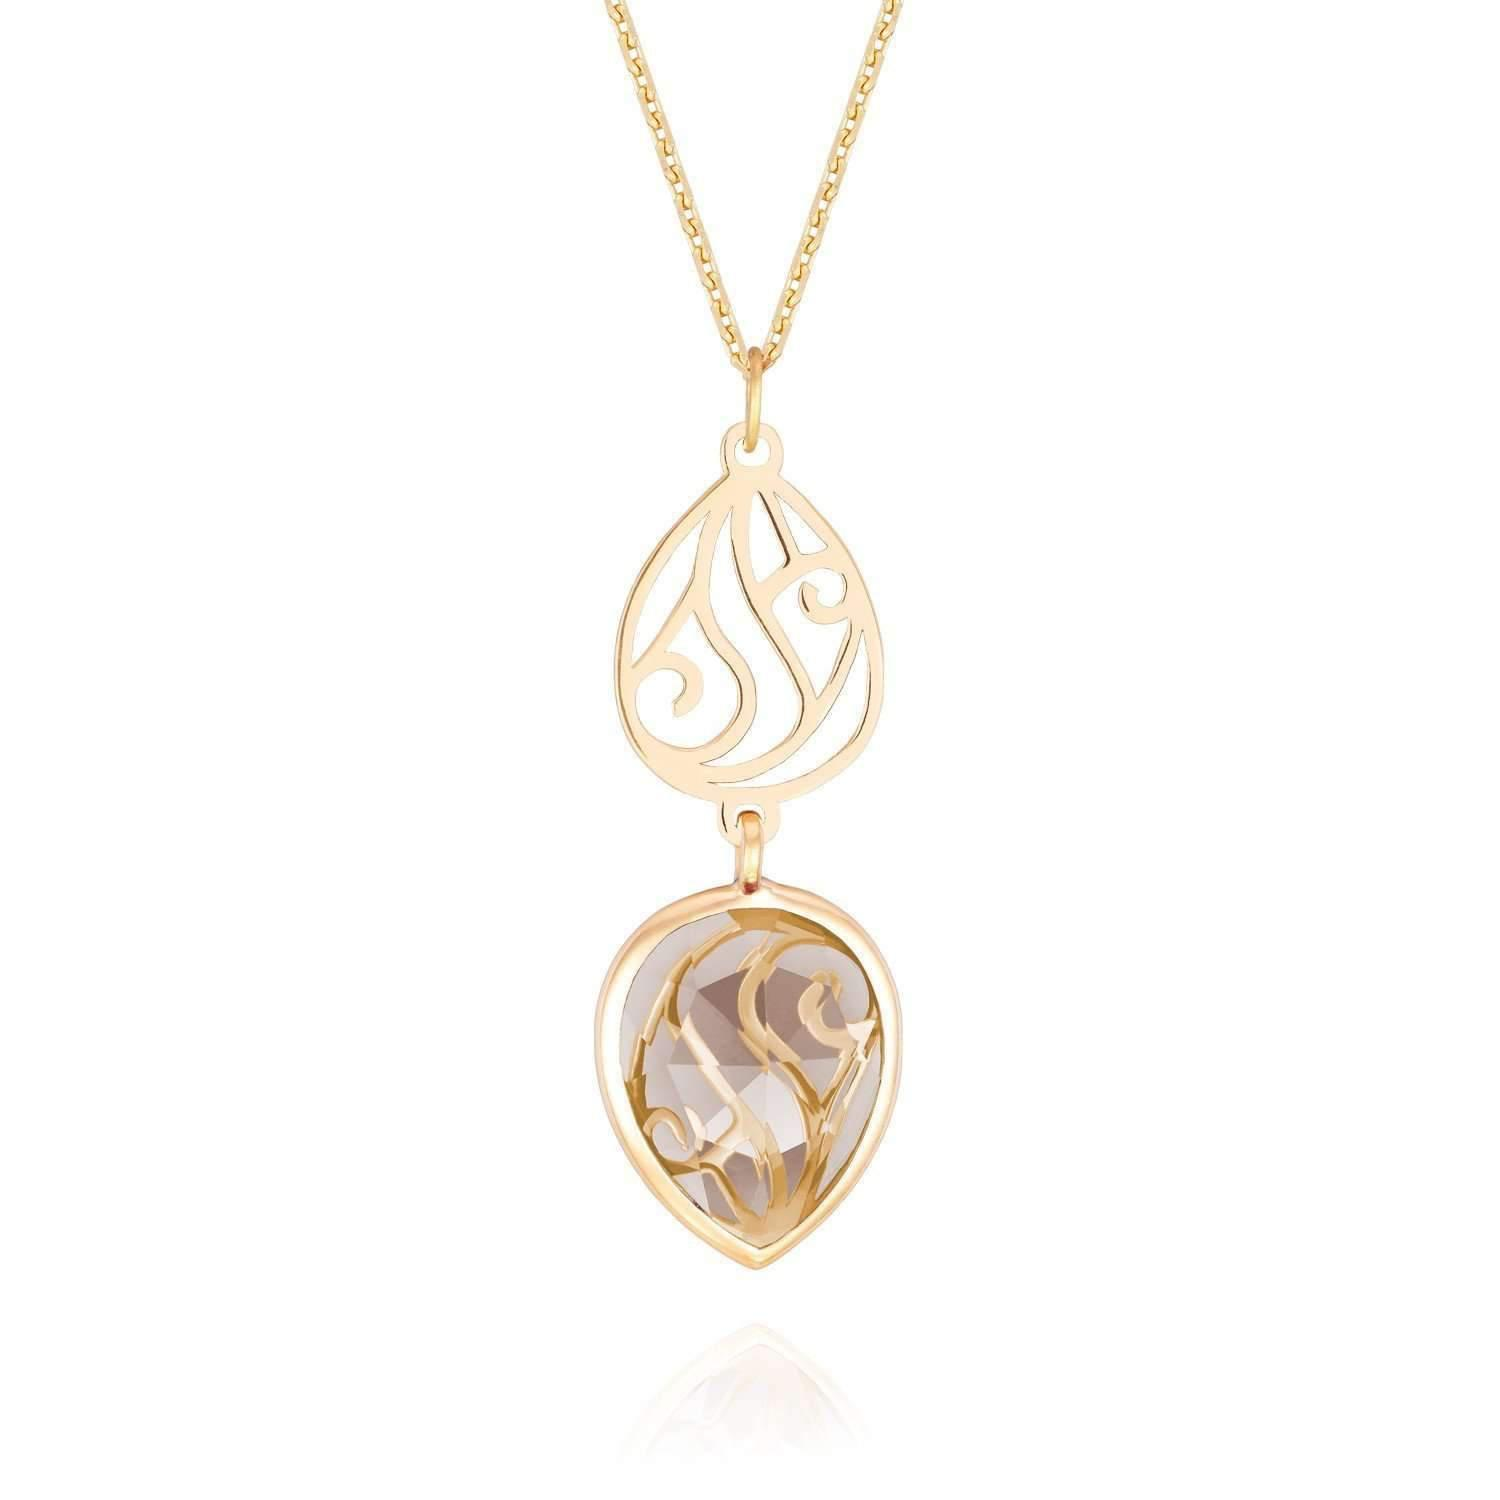 Perle de lune Constellation Garnet Necklace I7wgmUVFbx